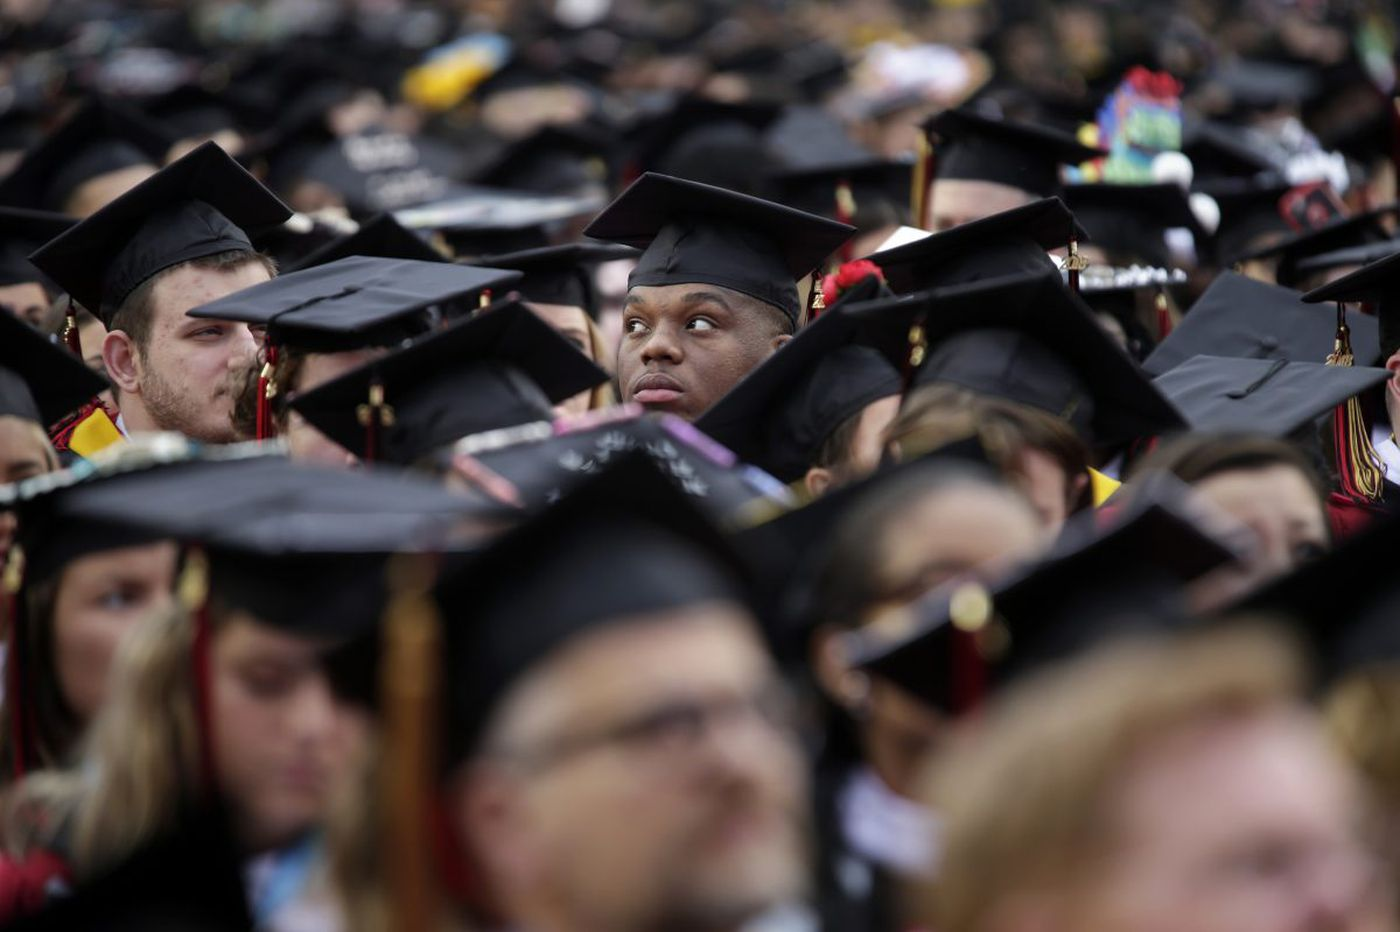 College grad salaries up nationally 2.8% in 2018, Philly average is $54K